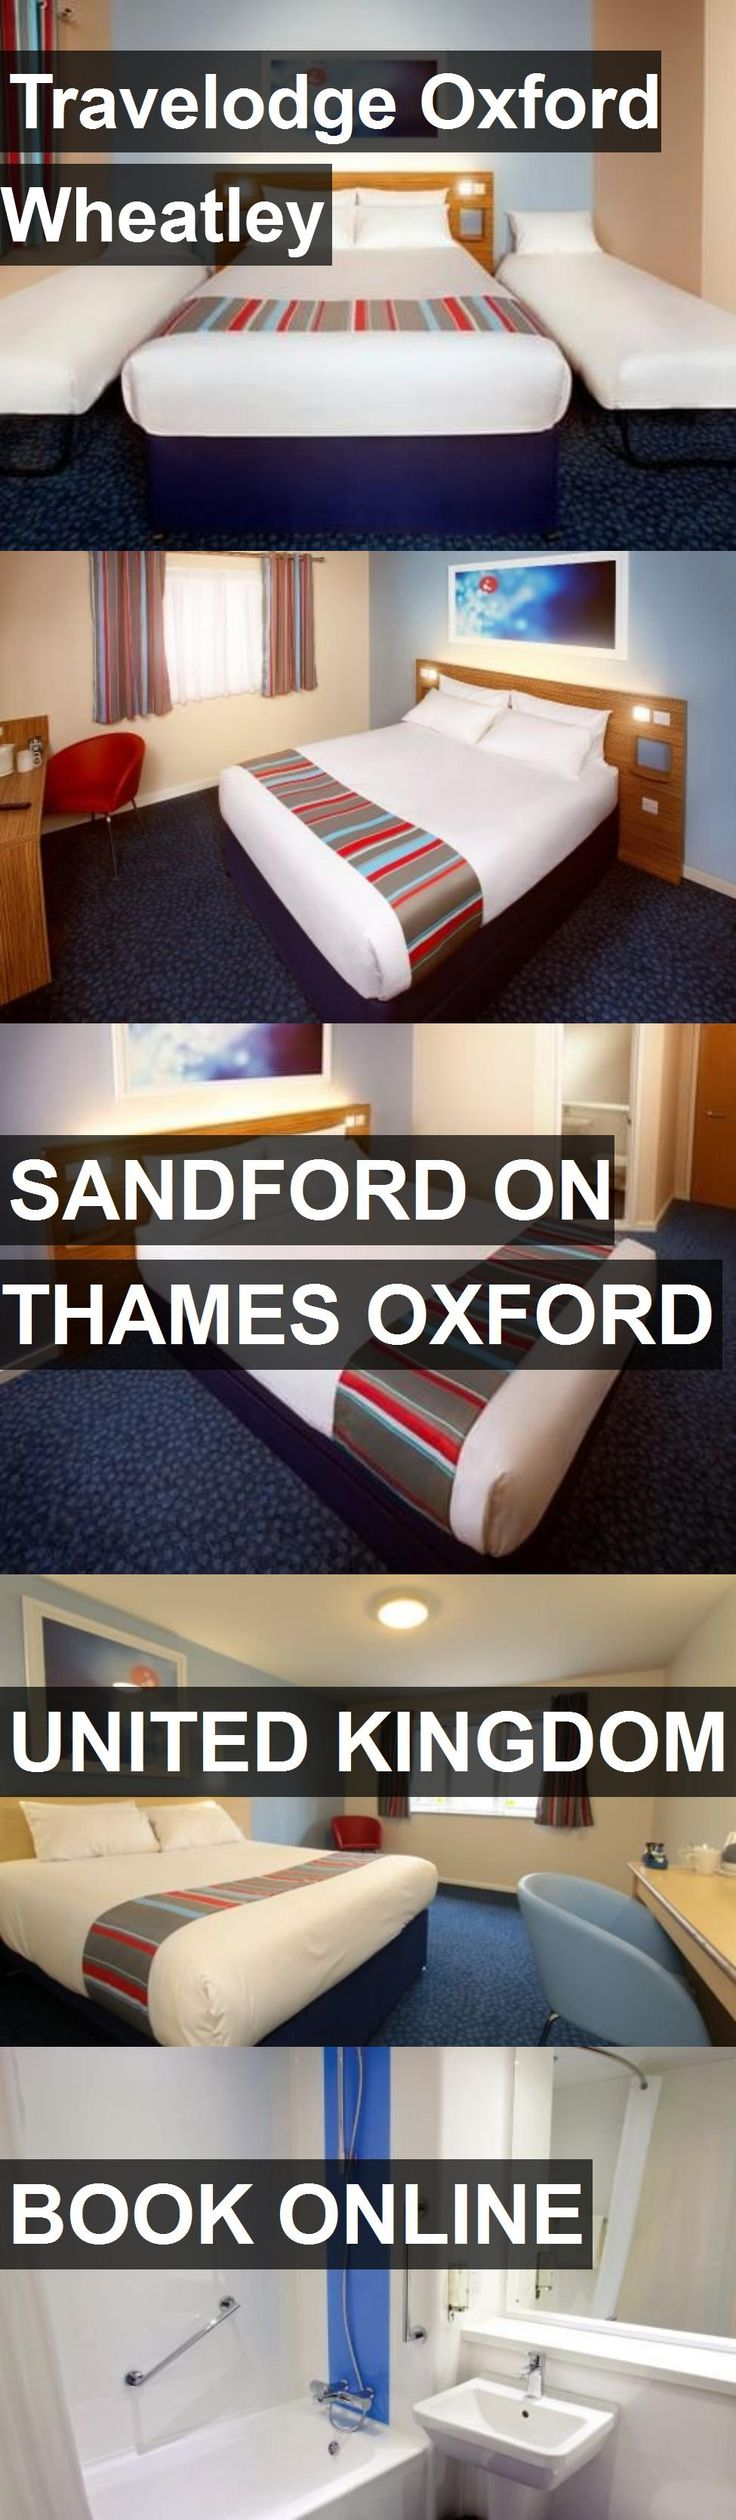 Hotel Travelodge Oxford Wheatley in Sandford on thames Oxford, United Kingdom. For more information, photos, reviews and best prices please follow the link. #UnitedKingdom #SandfordonthamesOxford #travel #vacation #hotel